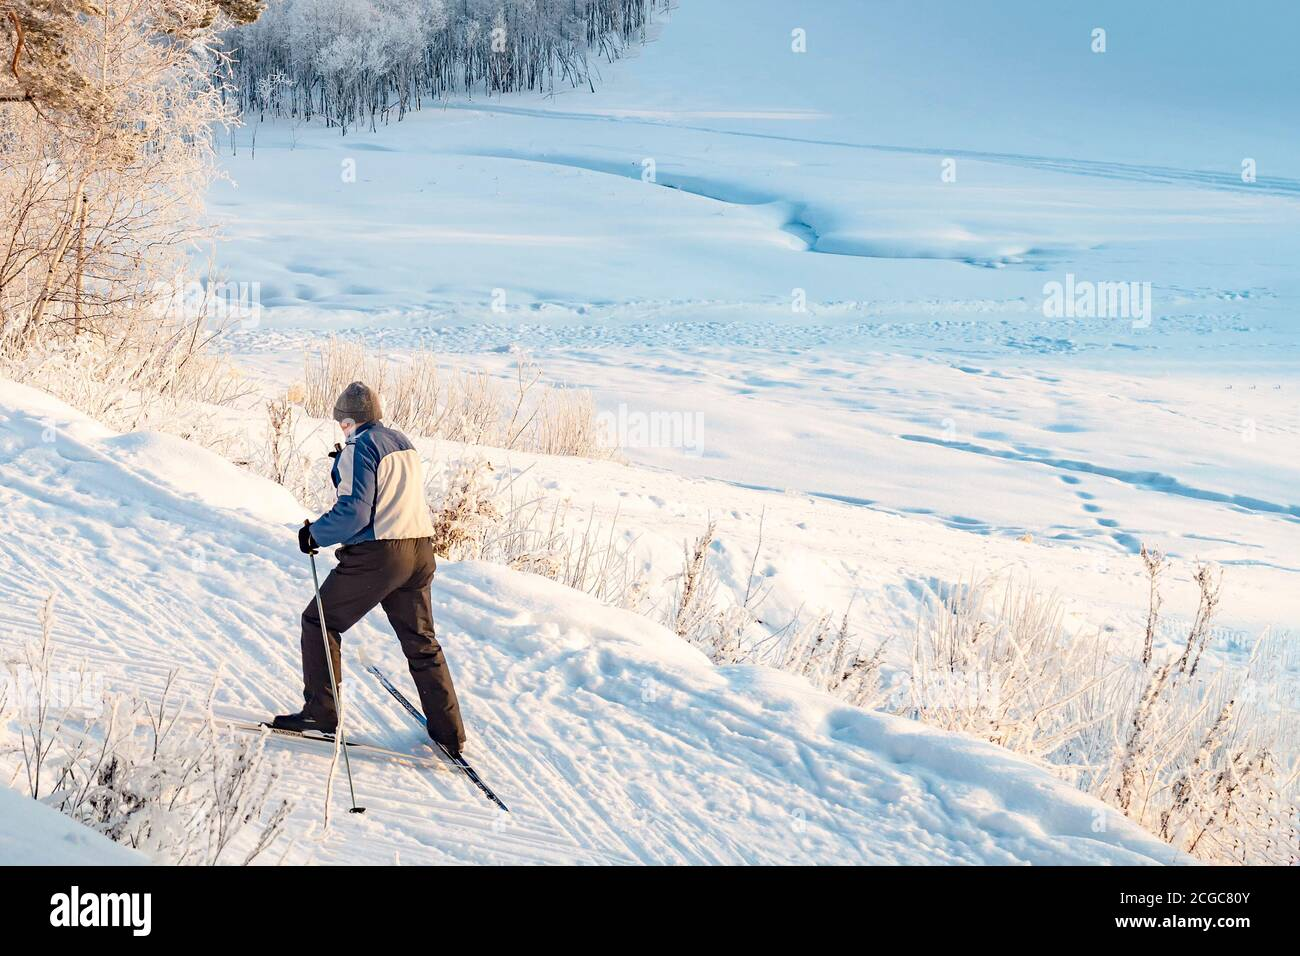 Skier man moves uphill. View from above. New Stock Photo